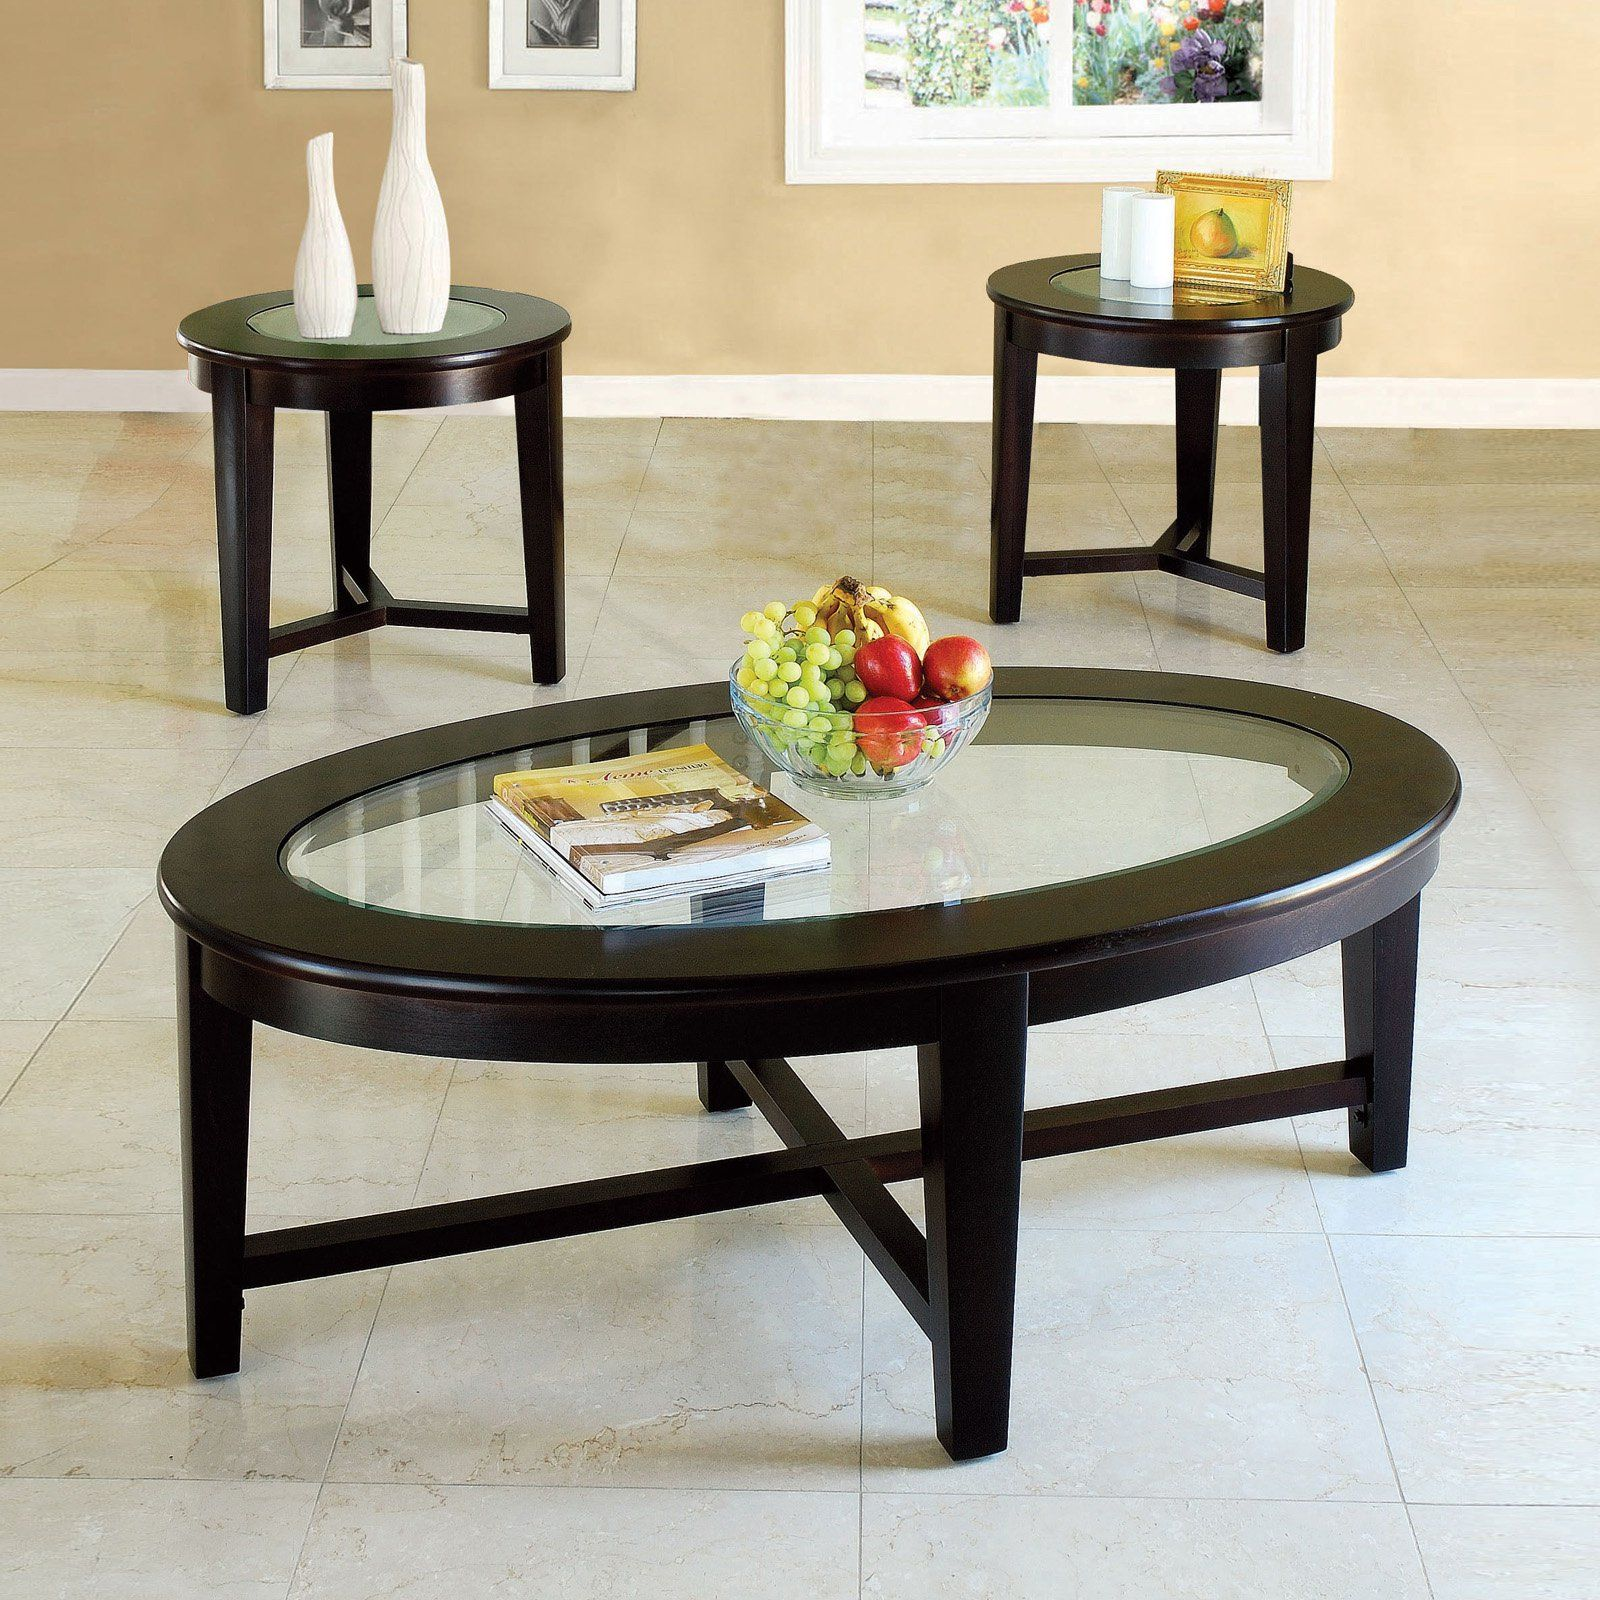 Acme Furniture Kort Coffee And End Table Set 3 Piece Set Coffee Table 3 Piece Coffee Table Set Coffee And End Tables [ 1600 x 1600 Pixel ]